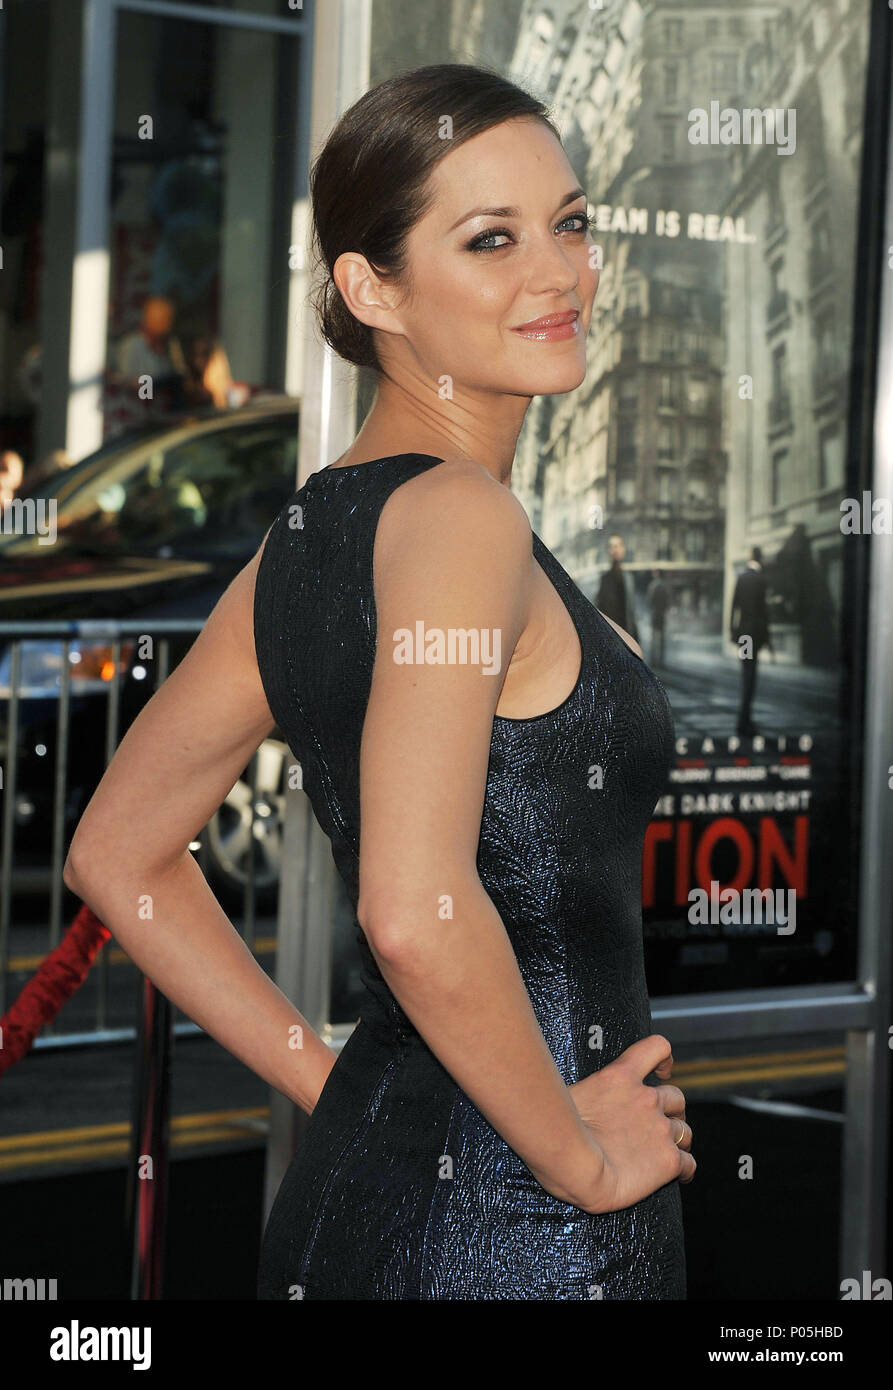 Marion Cotillard 45 Jpg Inception Premiere At The Chinese